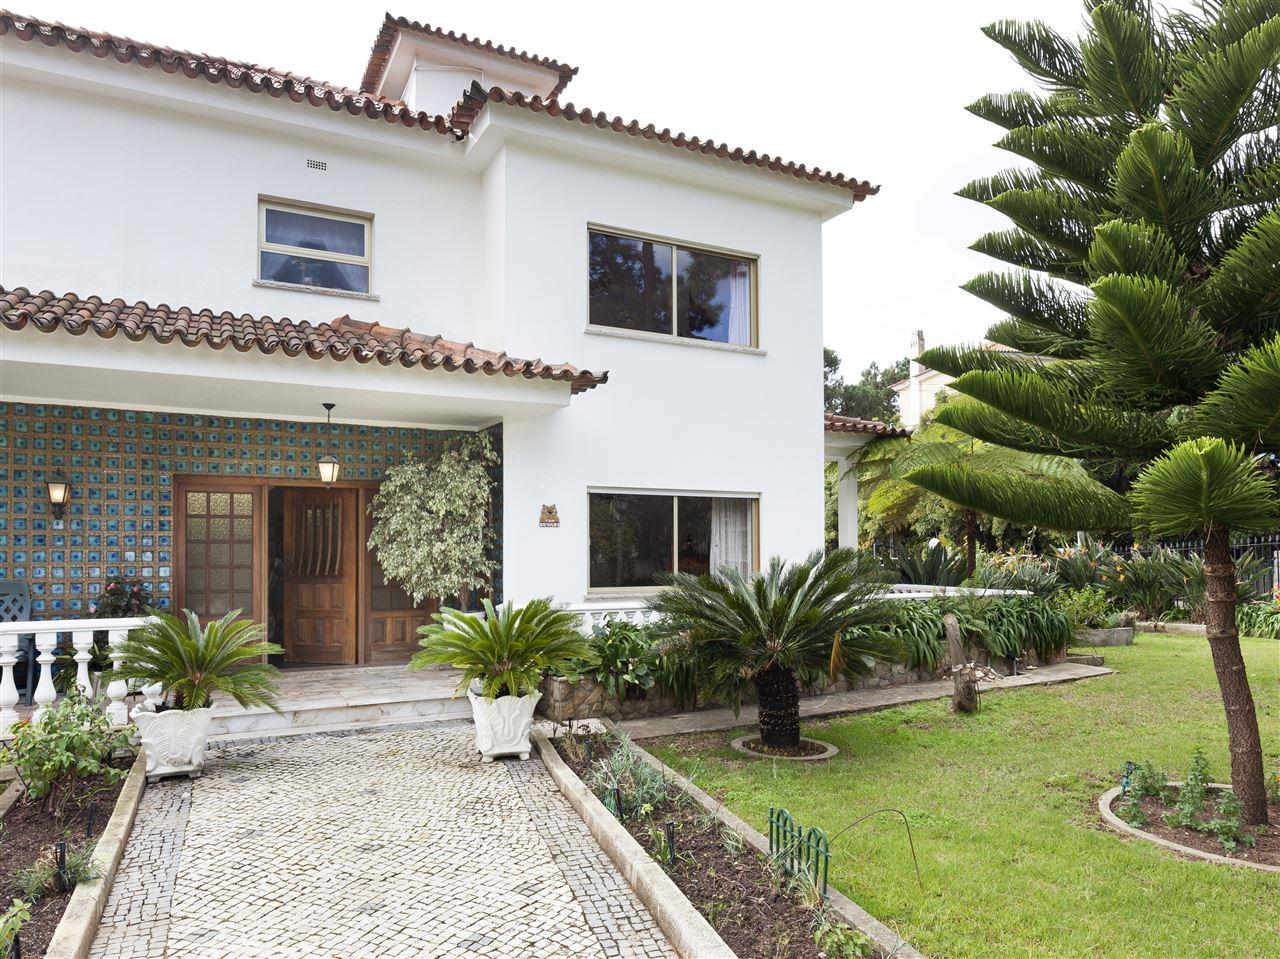 Tek Ailelik Ev için Satış at Detached house, 4 bedrooms, for Sale Cascais, Lisboa, Portekiz